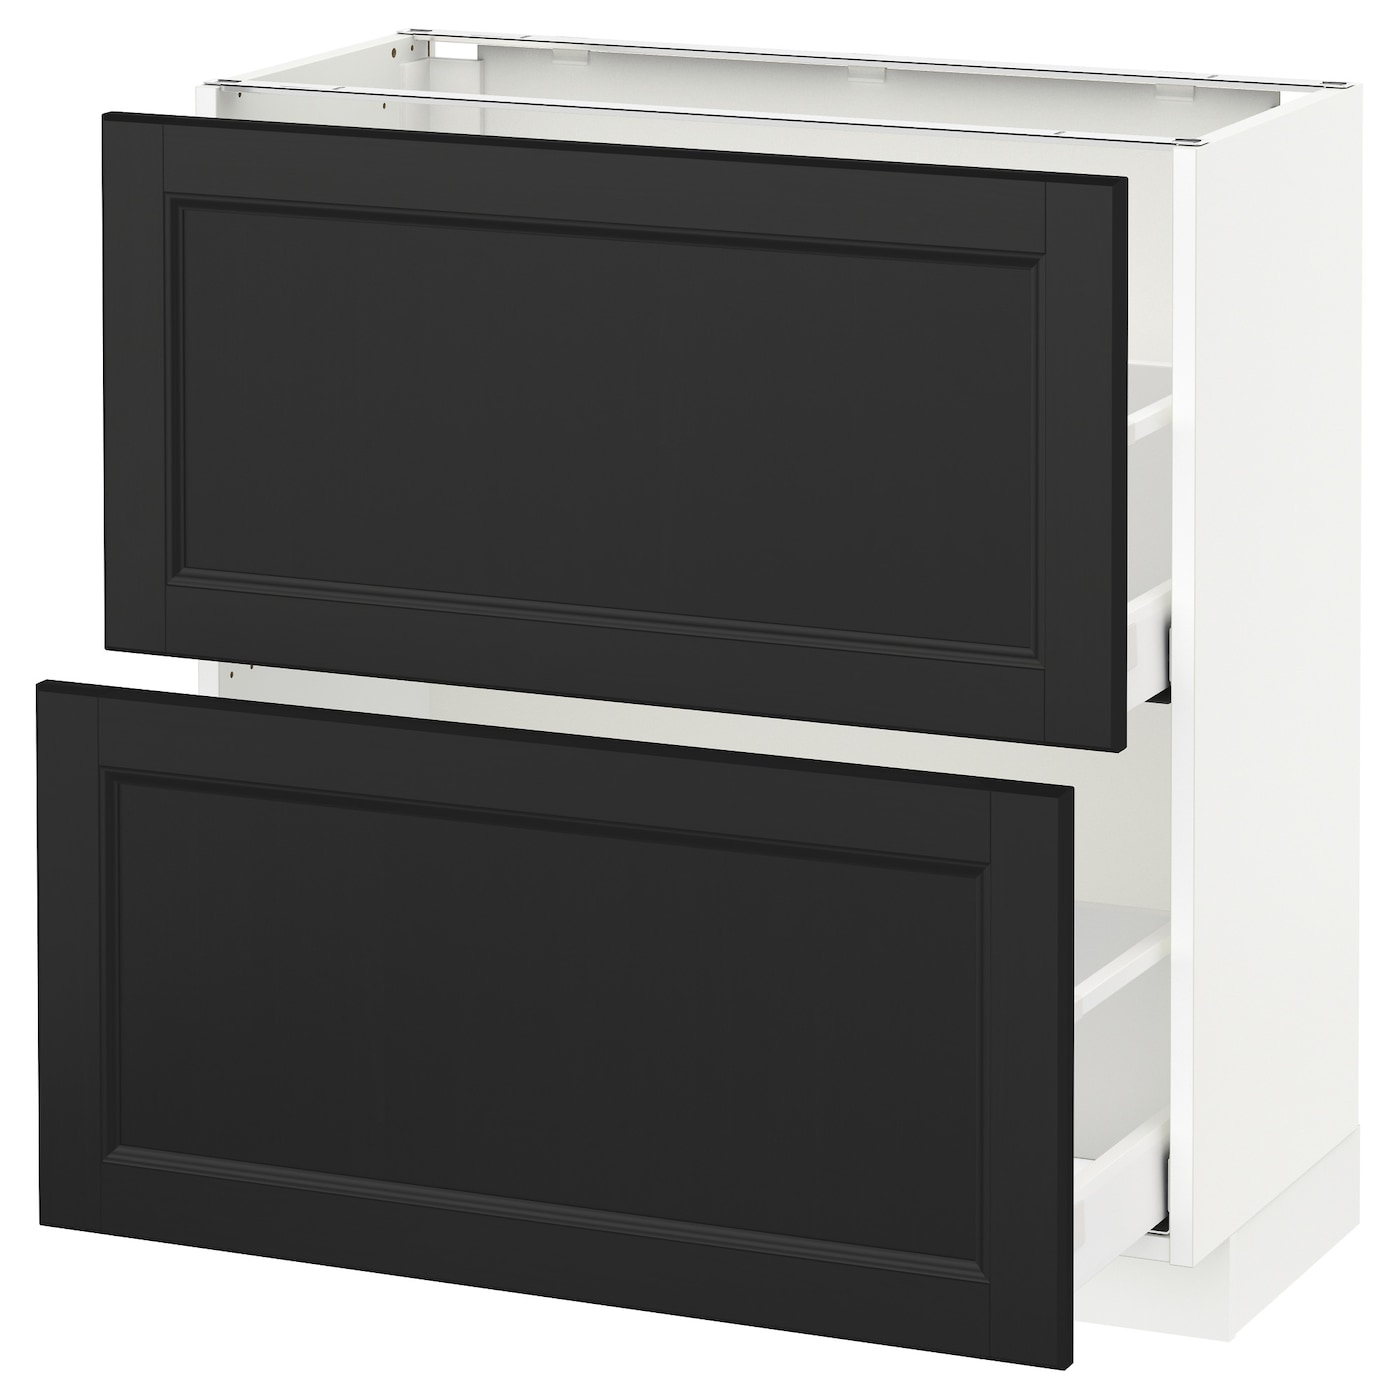 Ikea Kitchen Laxarby: METOD/MAXIMERA Base Cabinet With 2 Drawers White/laxarby